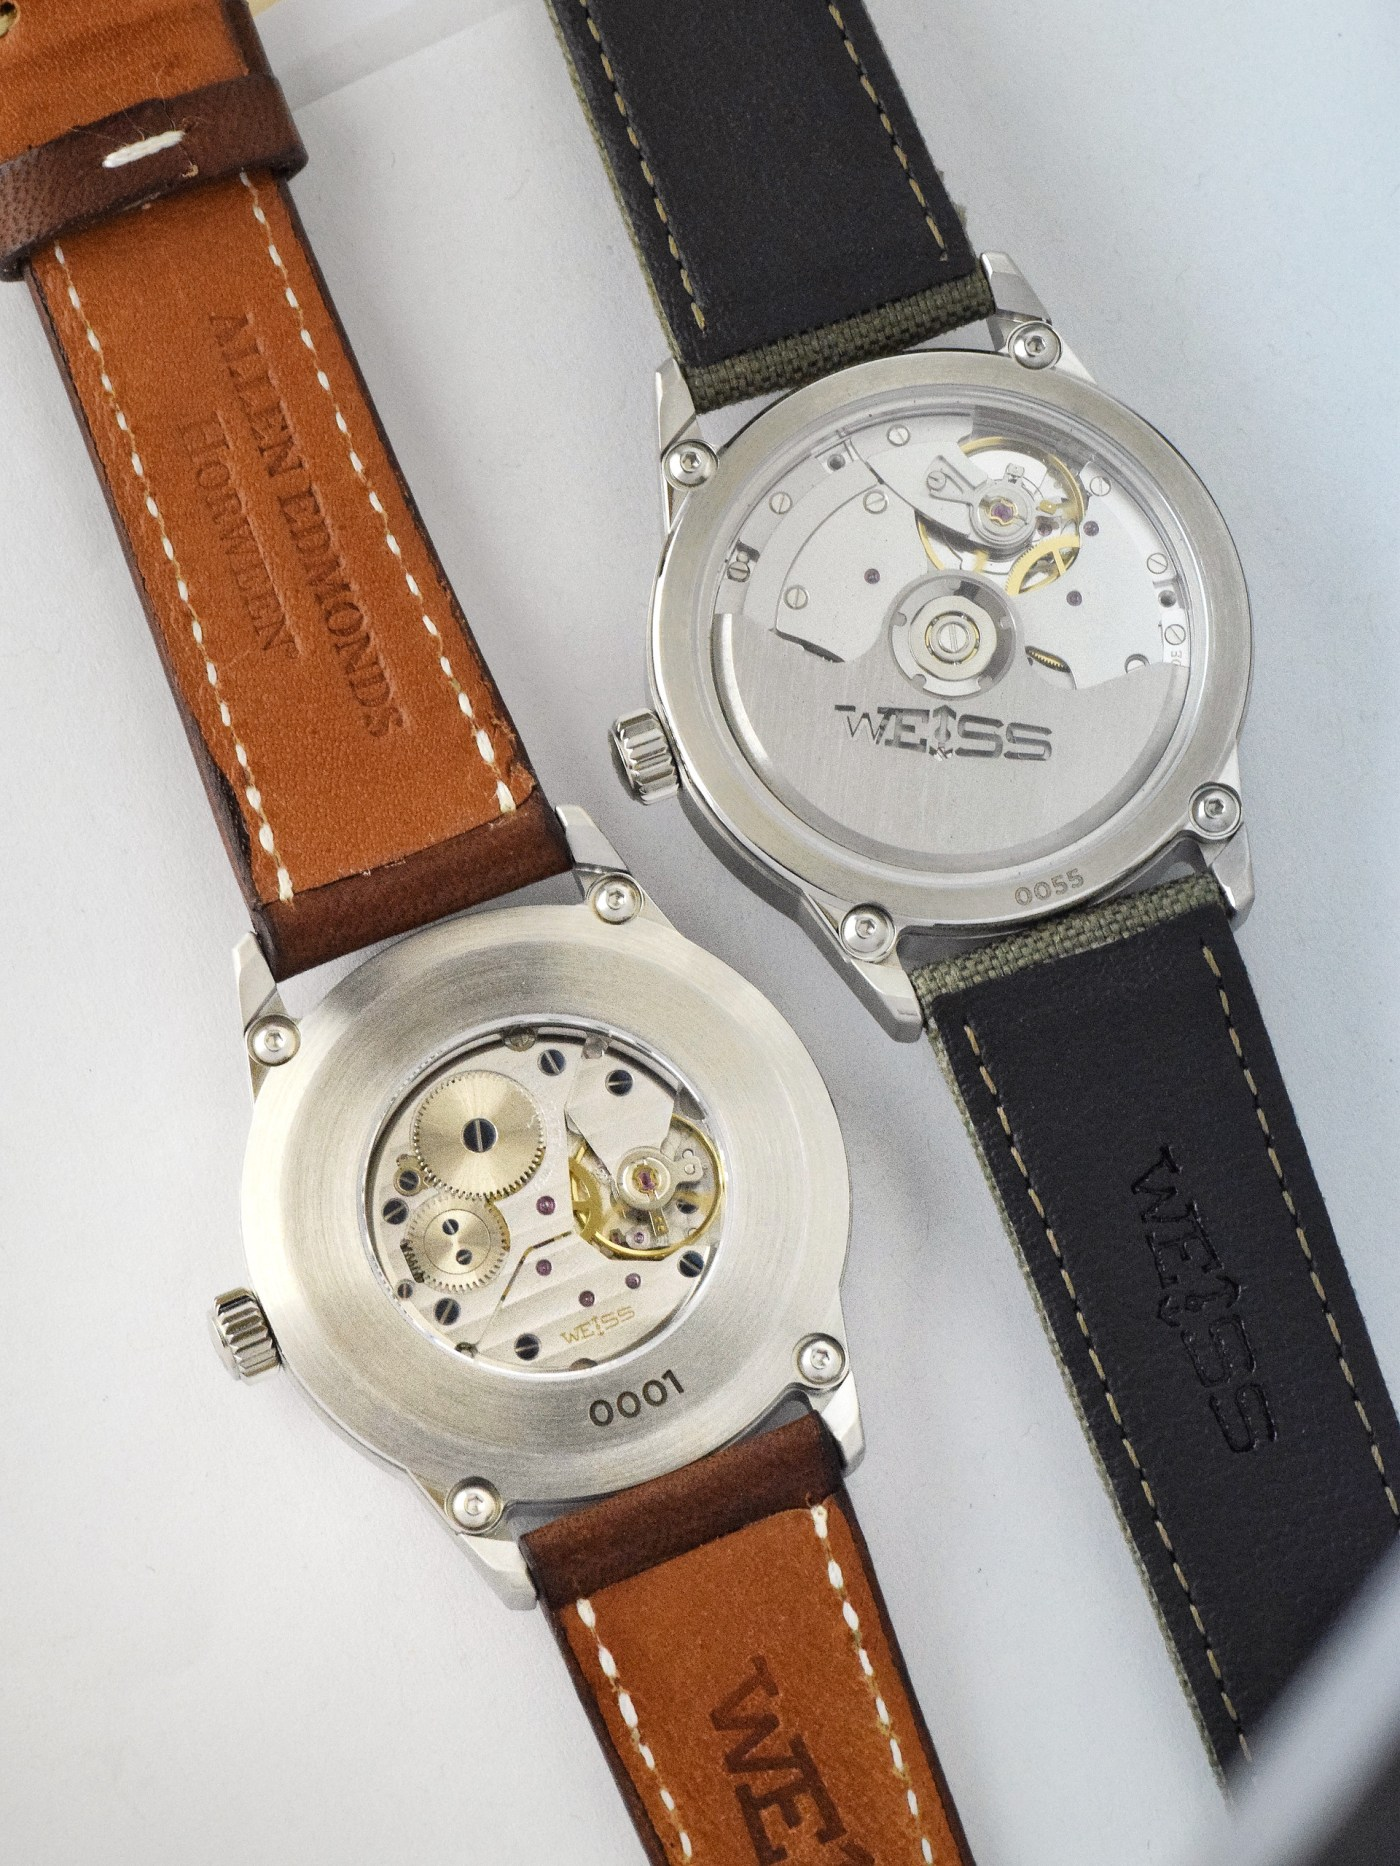 Weiss 38 mm Special Issue Manual vs. 38 mm Automatic Issue Field Watch